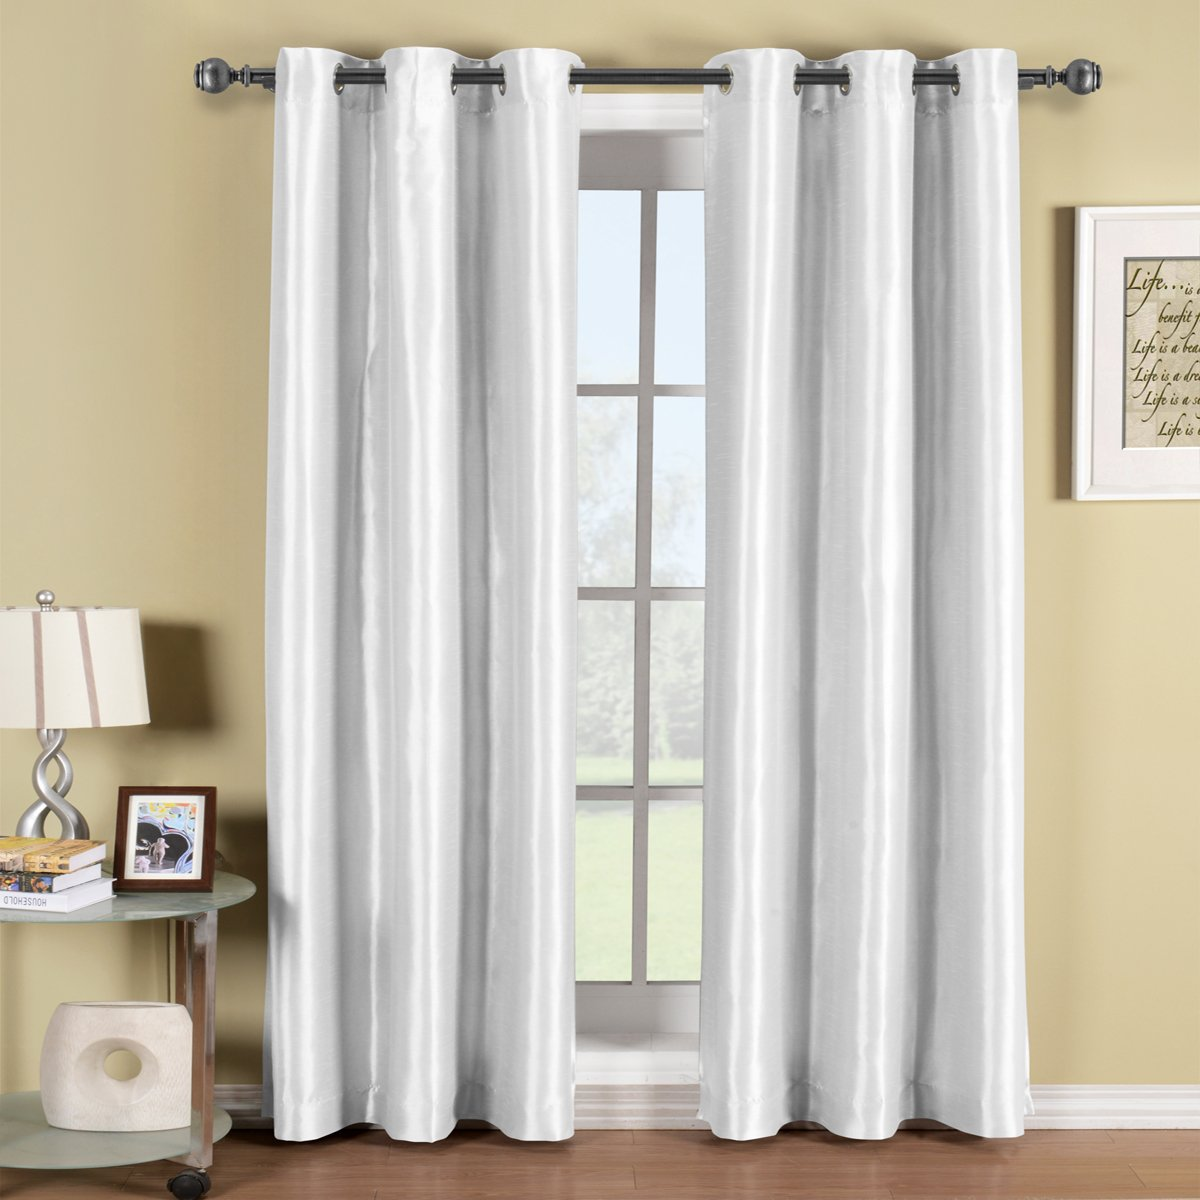 One White Top Grommet Blackout Curtain Panel, Triple-Pass Foam Back Layer, Elegant and Contemporary Soho 63 Inches Blackout Panel